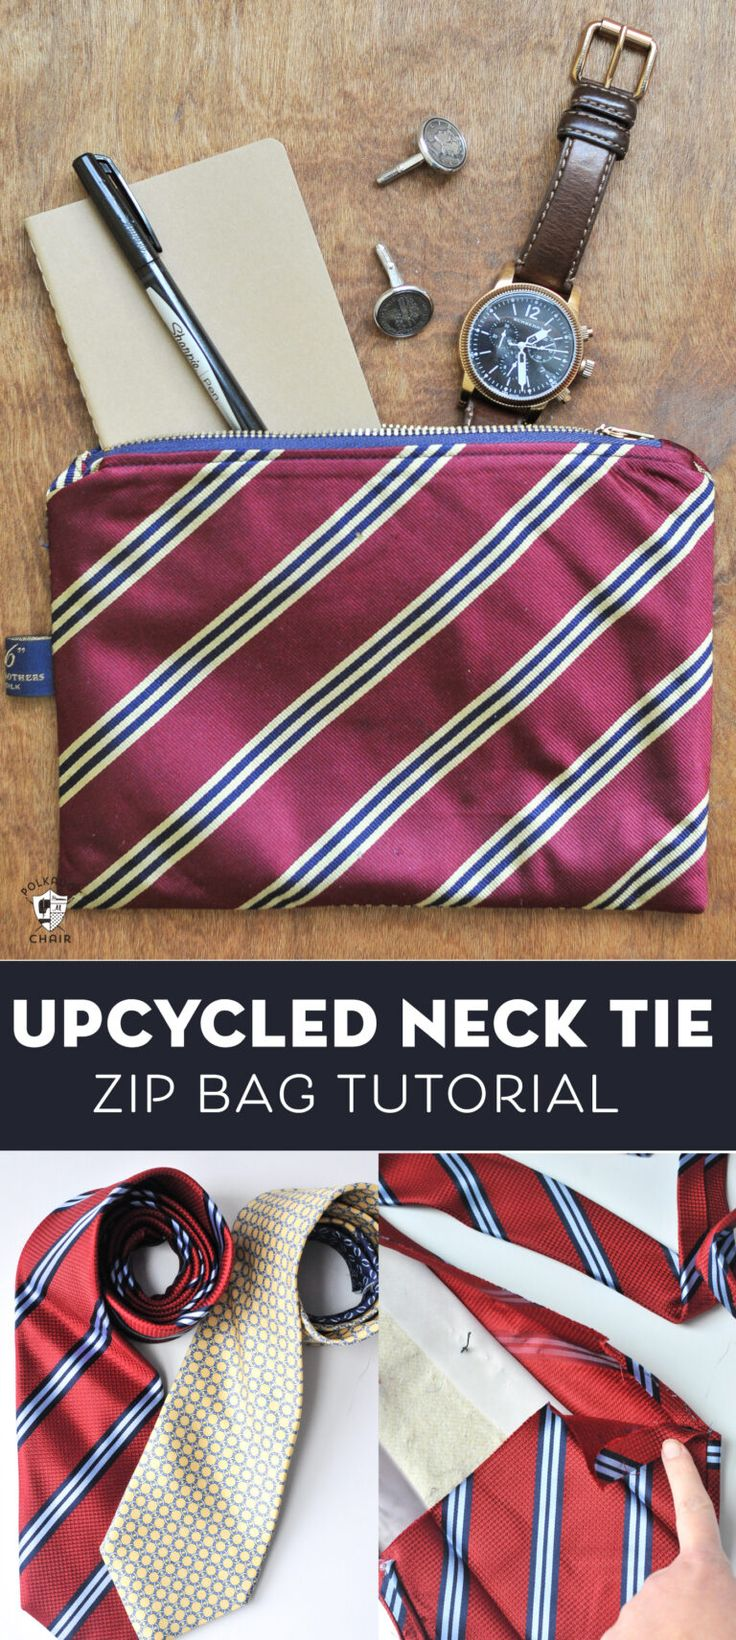 How to Make Zip Bags from Old Ties! DIY gift idea for Men